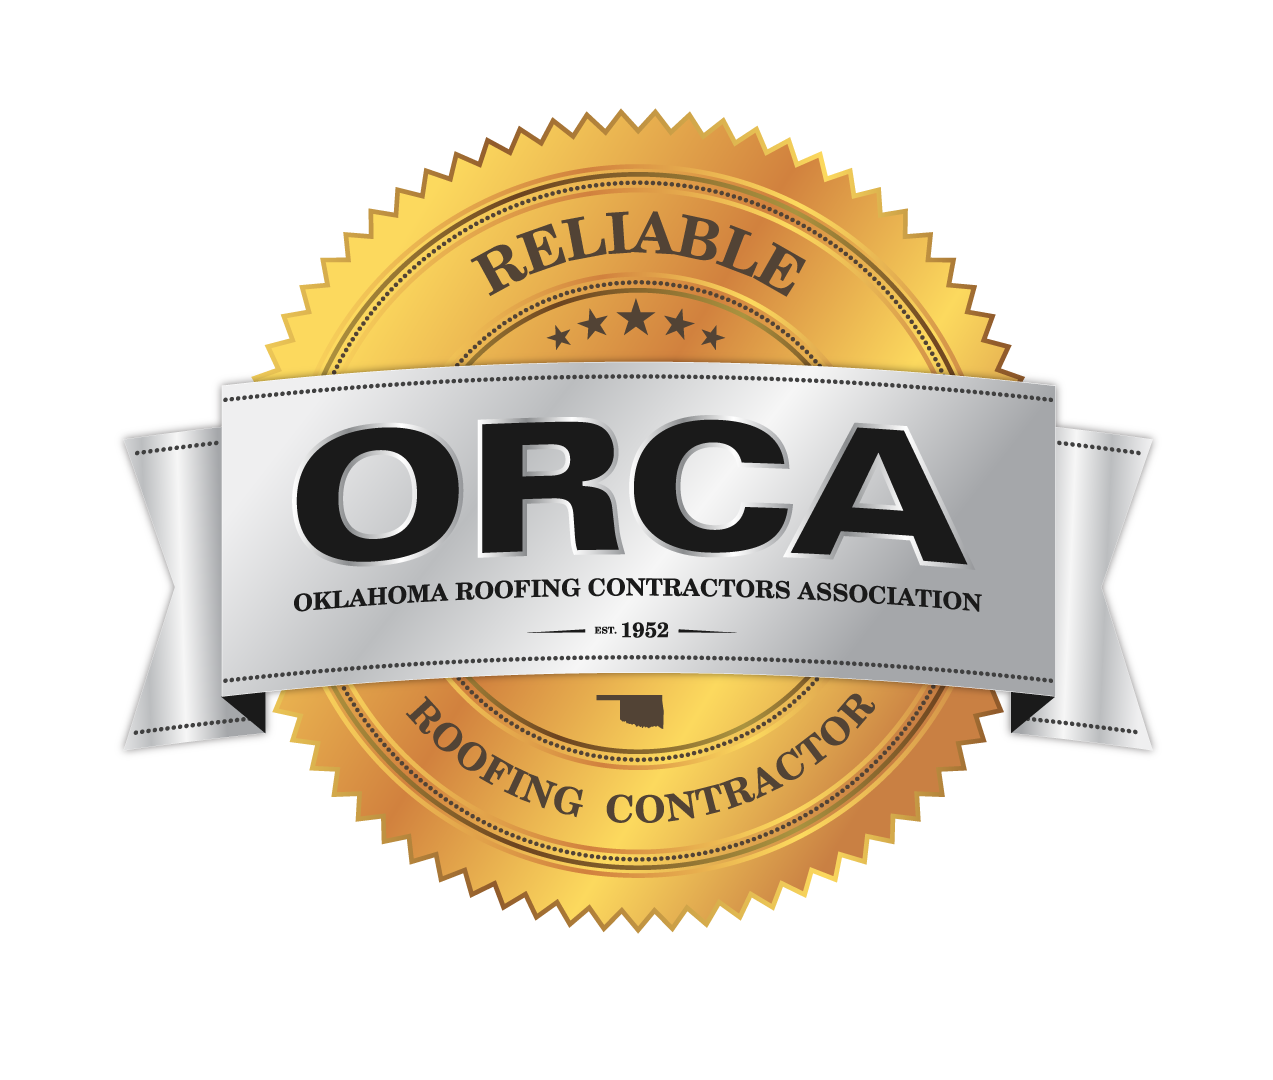 OKLAHOMA ROOFING CONTRACTORS ASSOCIATION